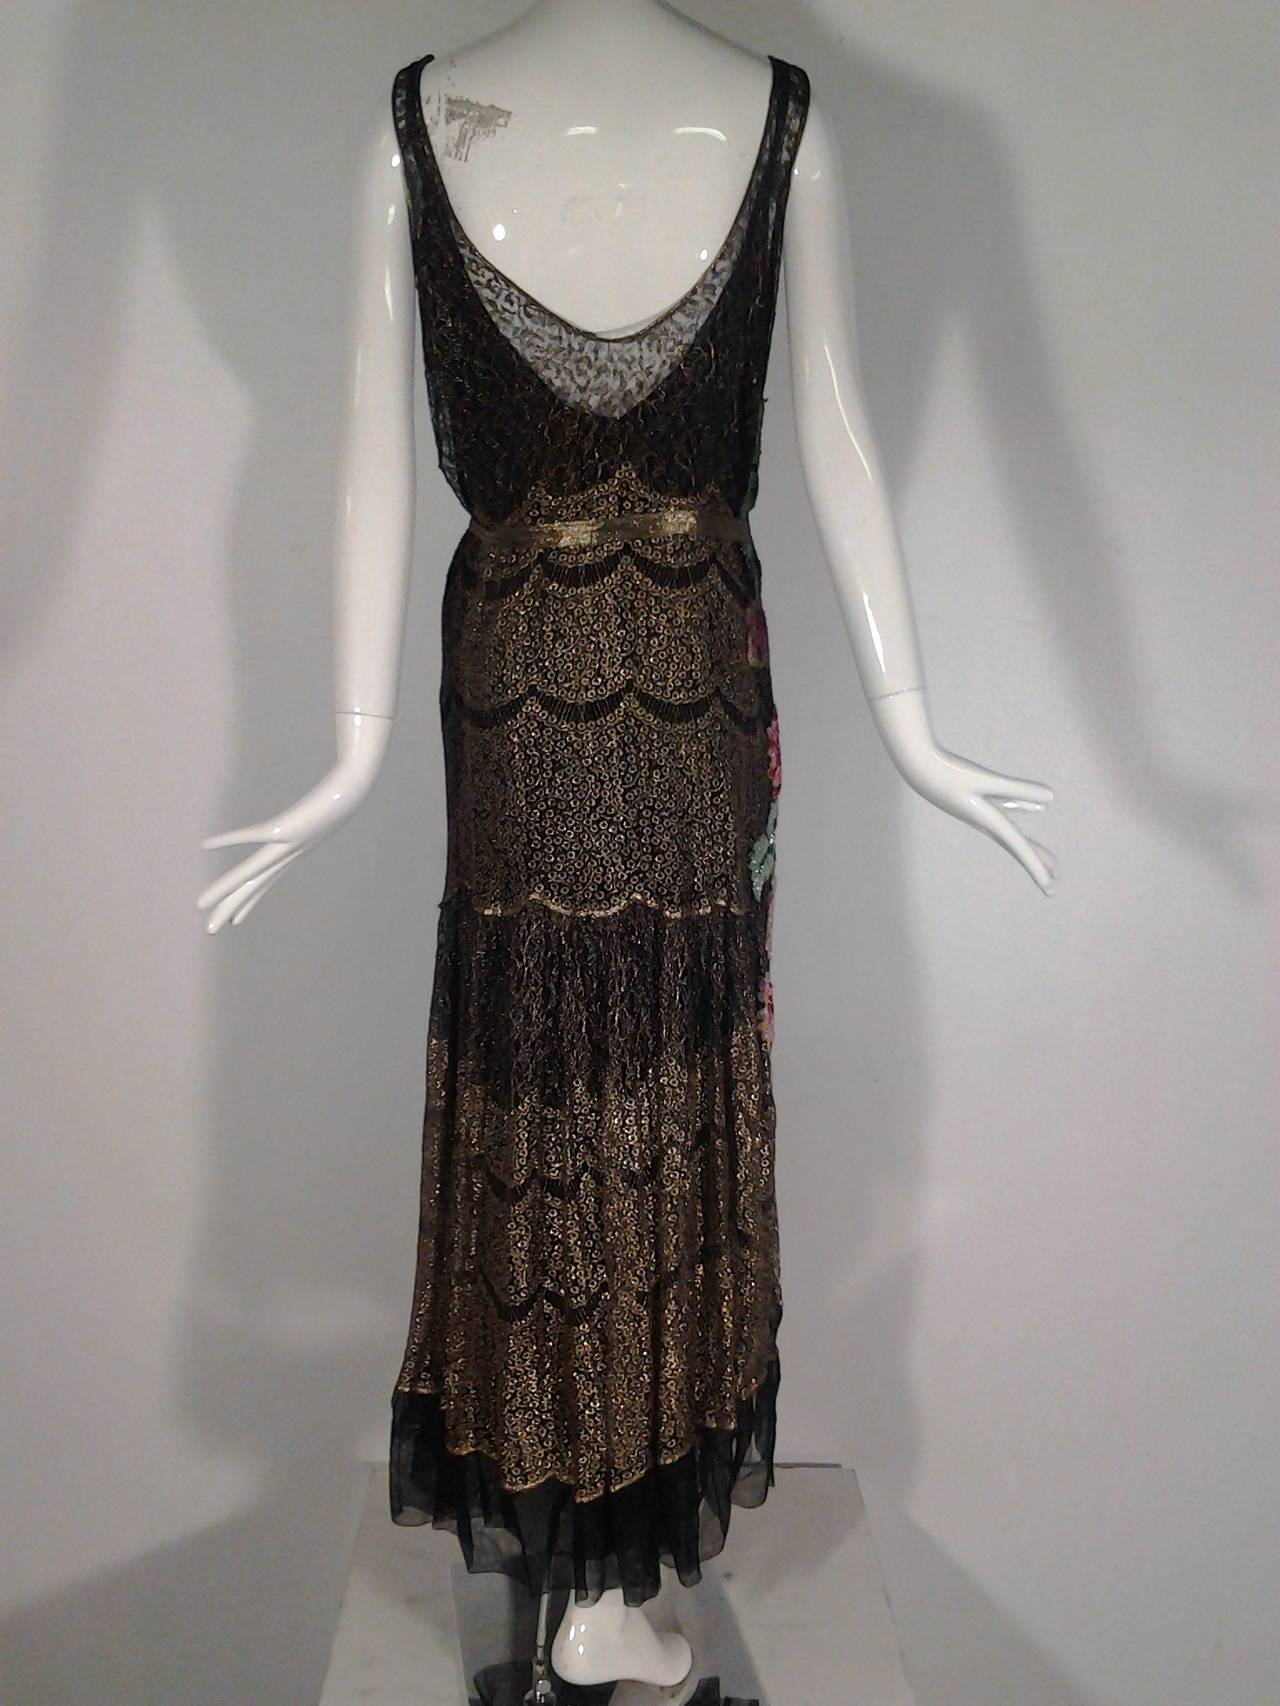 1920s French Evening Gown with Gold Lame and Elaborate Beading In Excellent Condition For Sale In San Francisco, CA